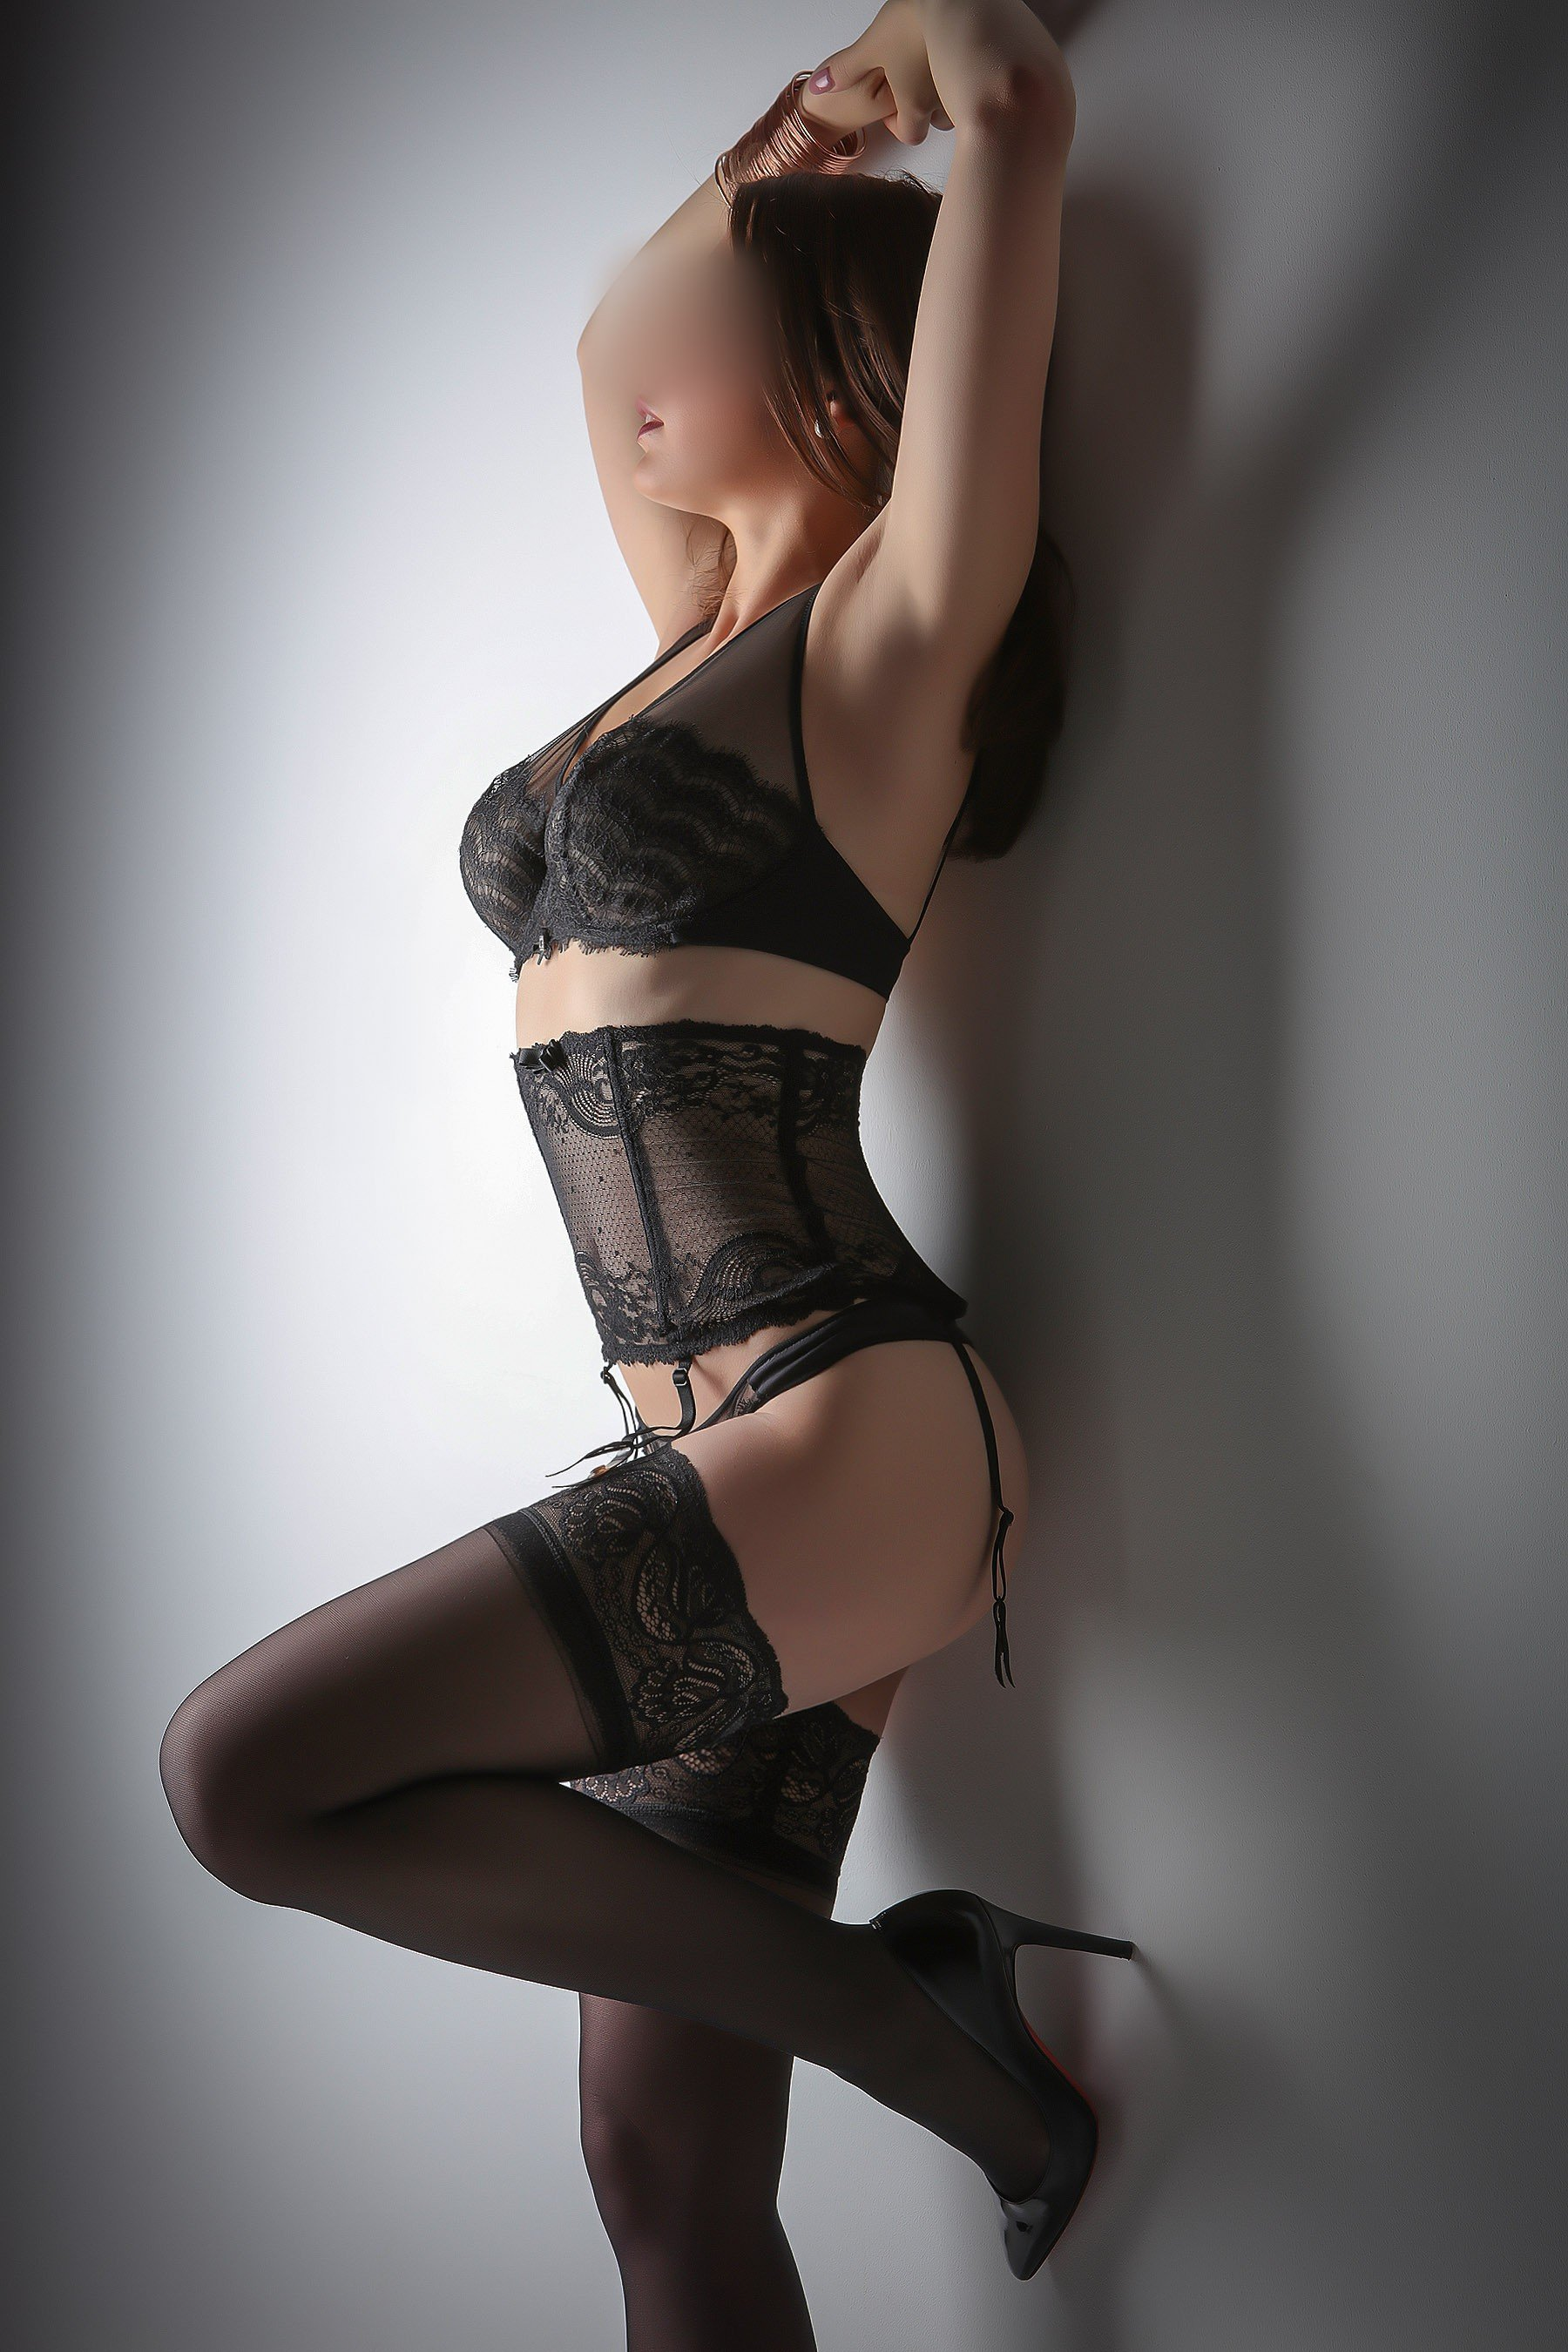 Andrea (24), escort in Geneva, Genève, Switzerland